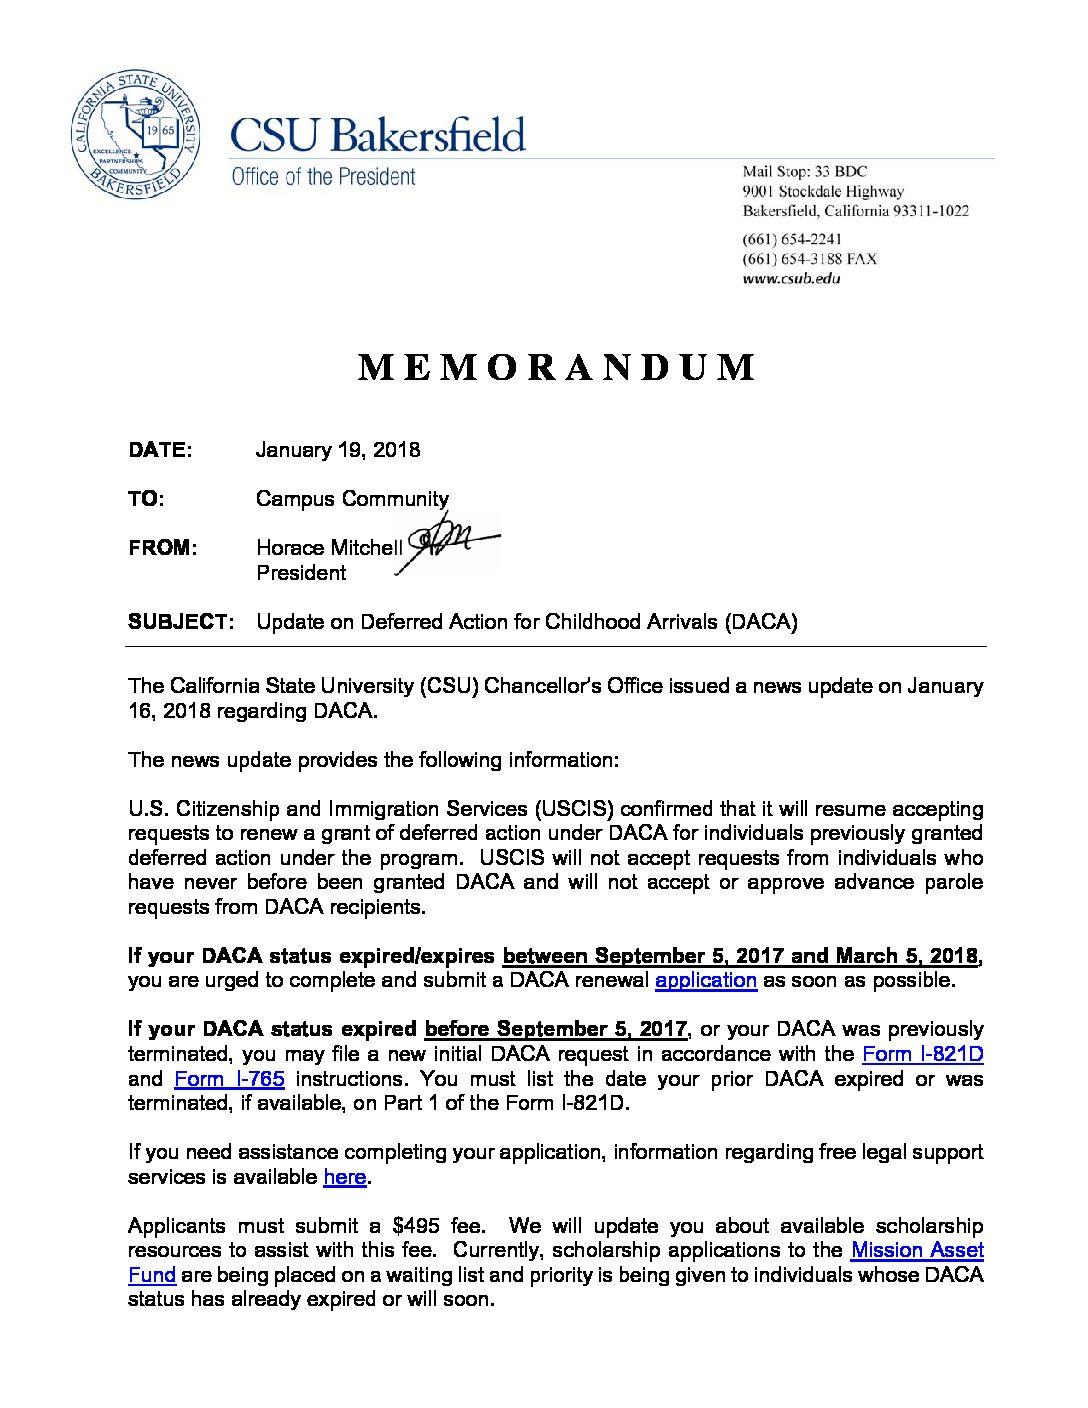 Brief president mitchell releases memo regarding daca updates by managing editor january 20 2018 falaconquin